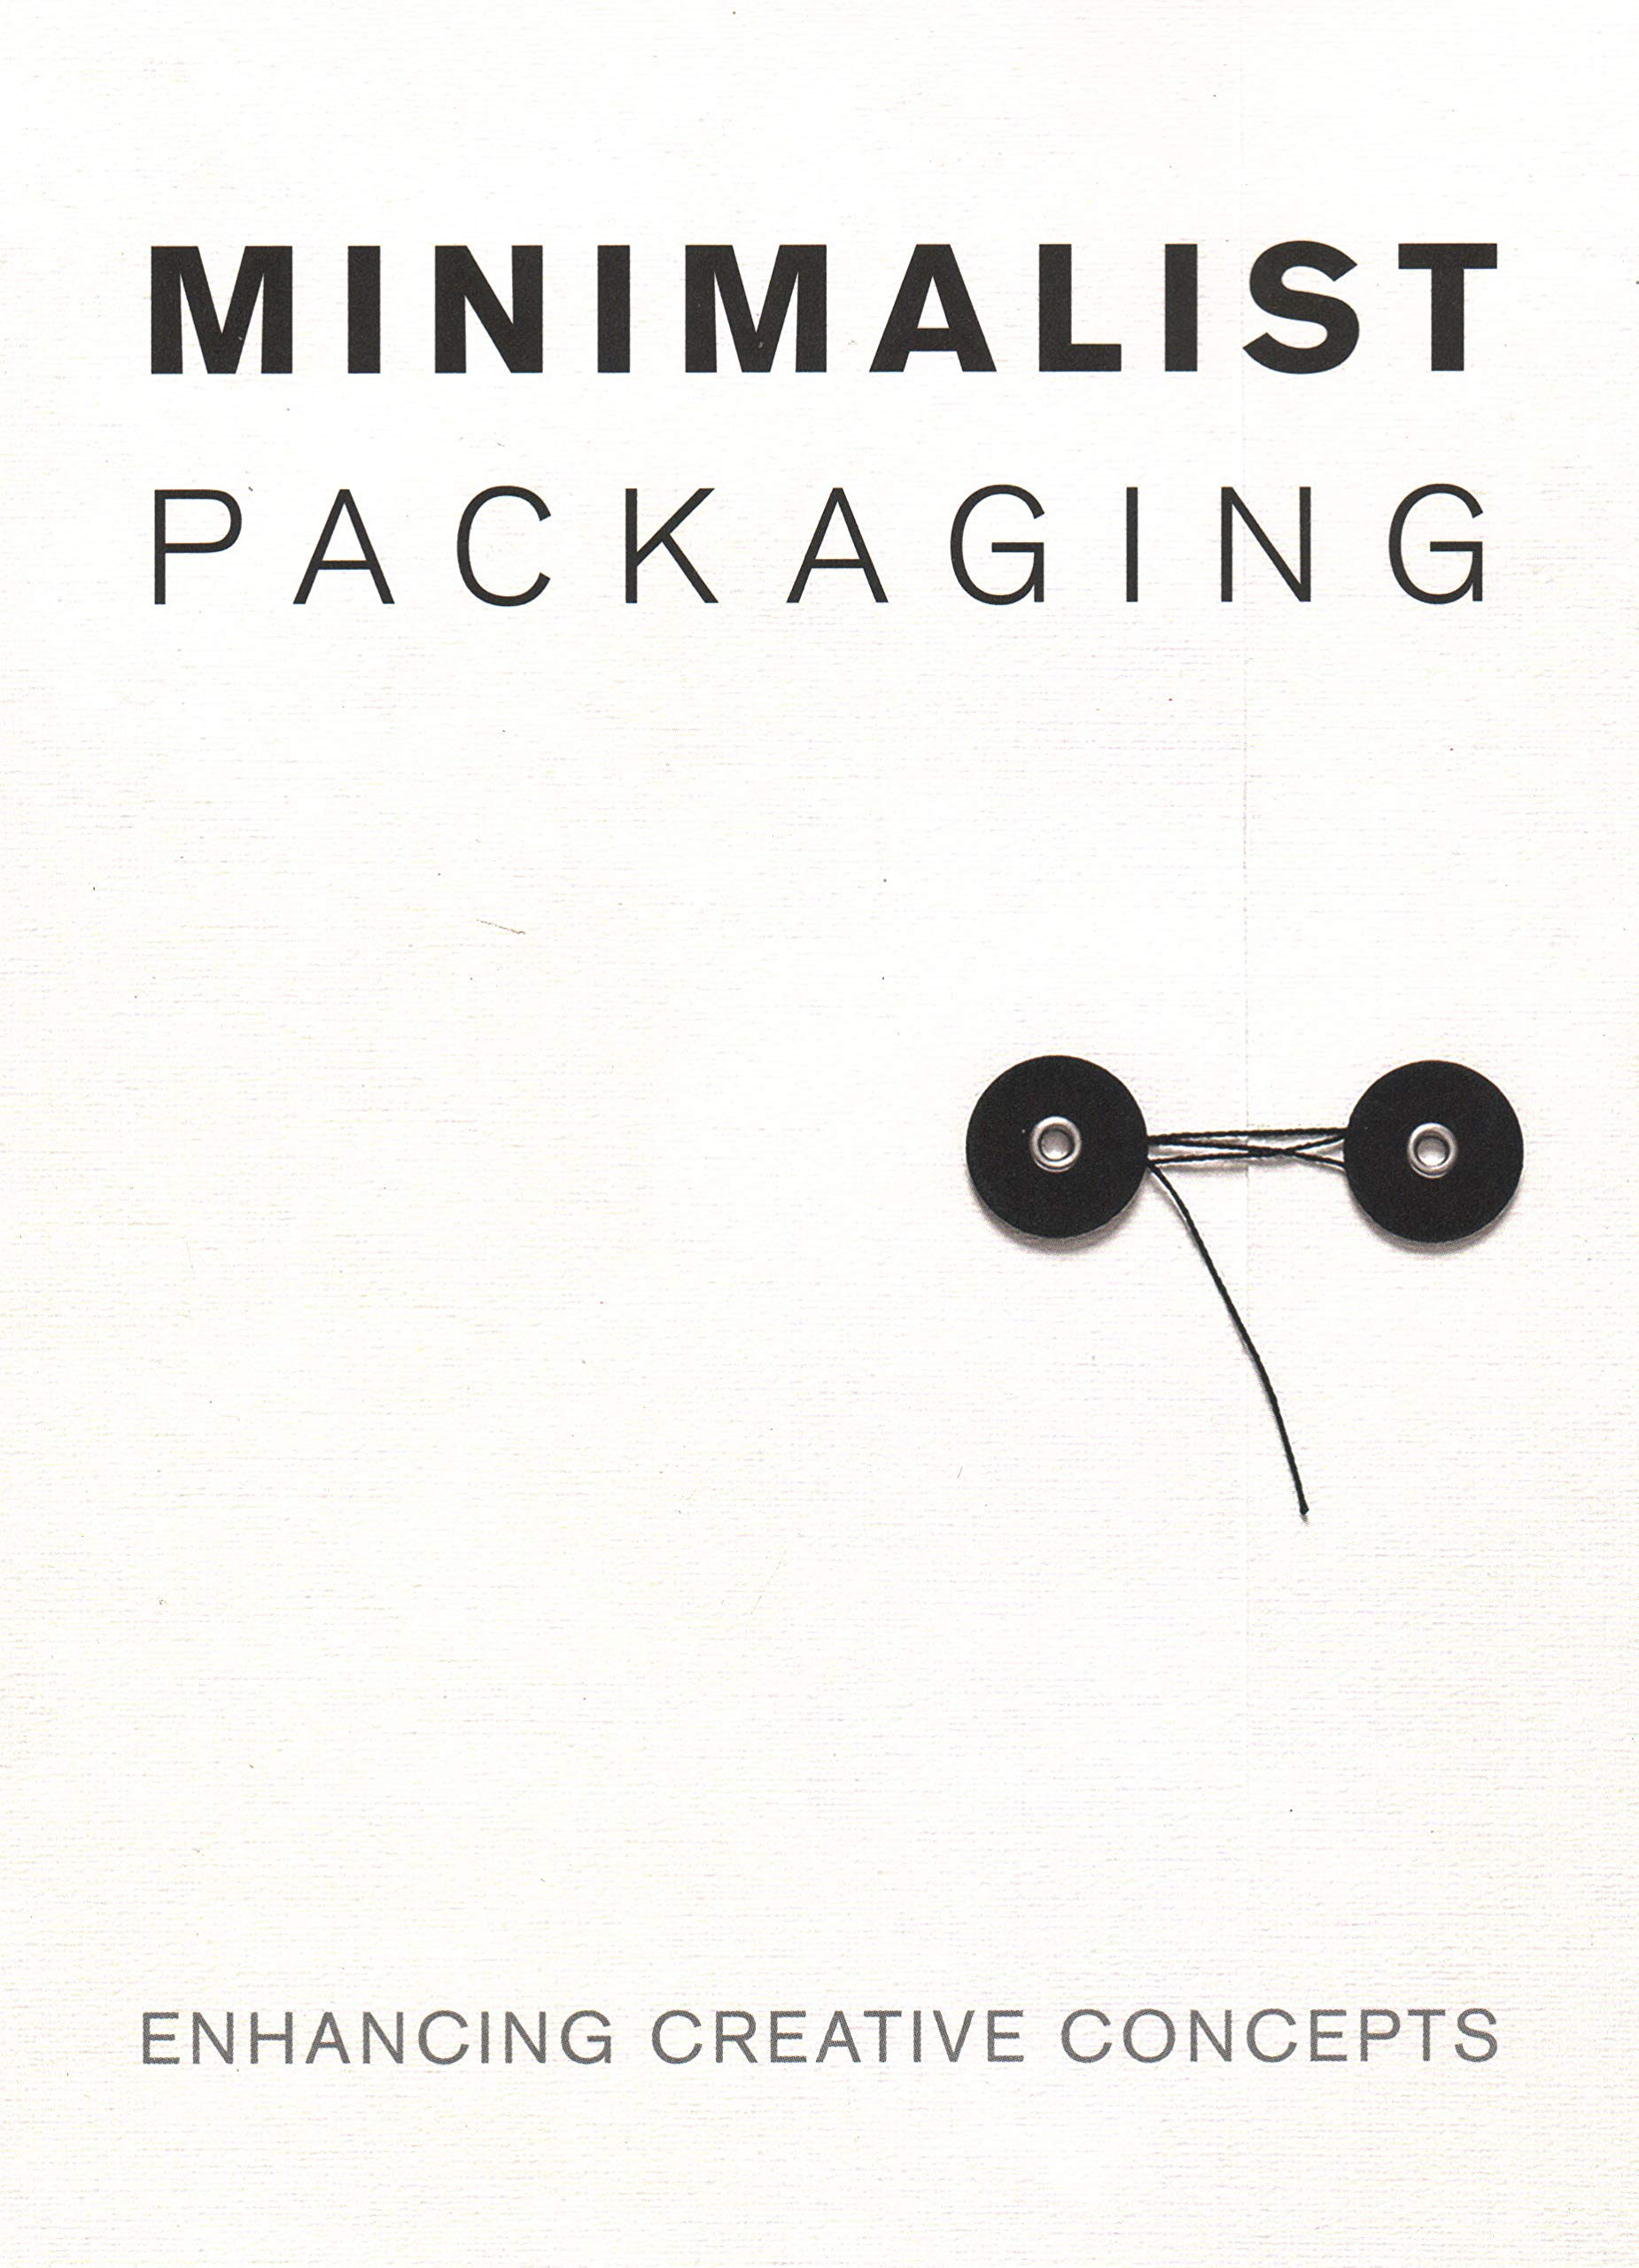 「Minimalist Packaging: Enhancing Creative Concepts」に掲載されました。